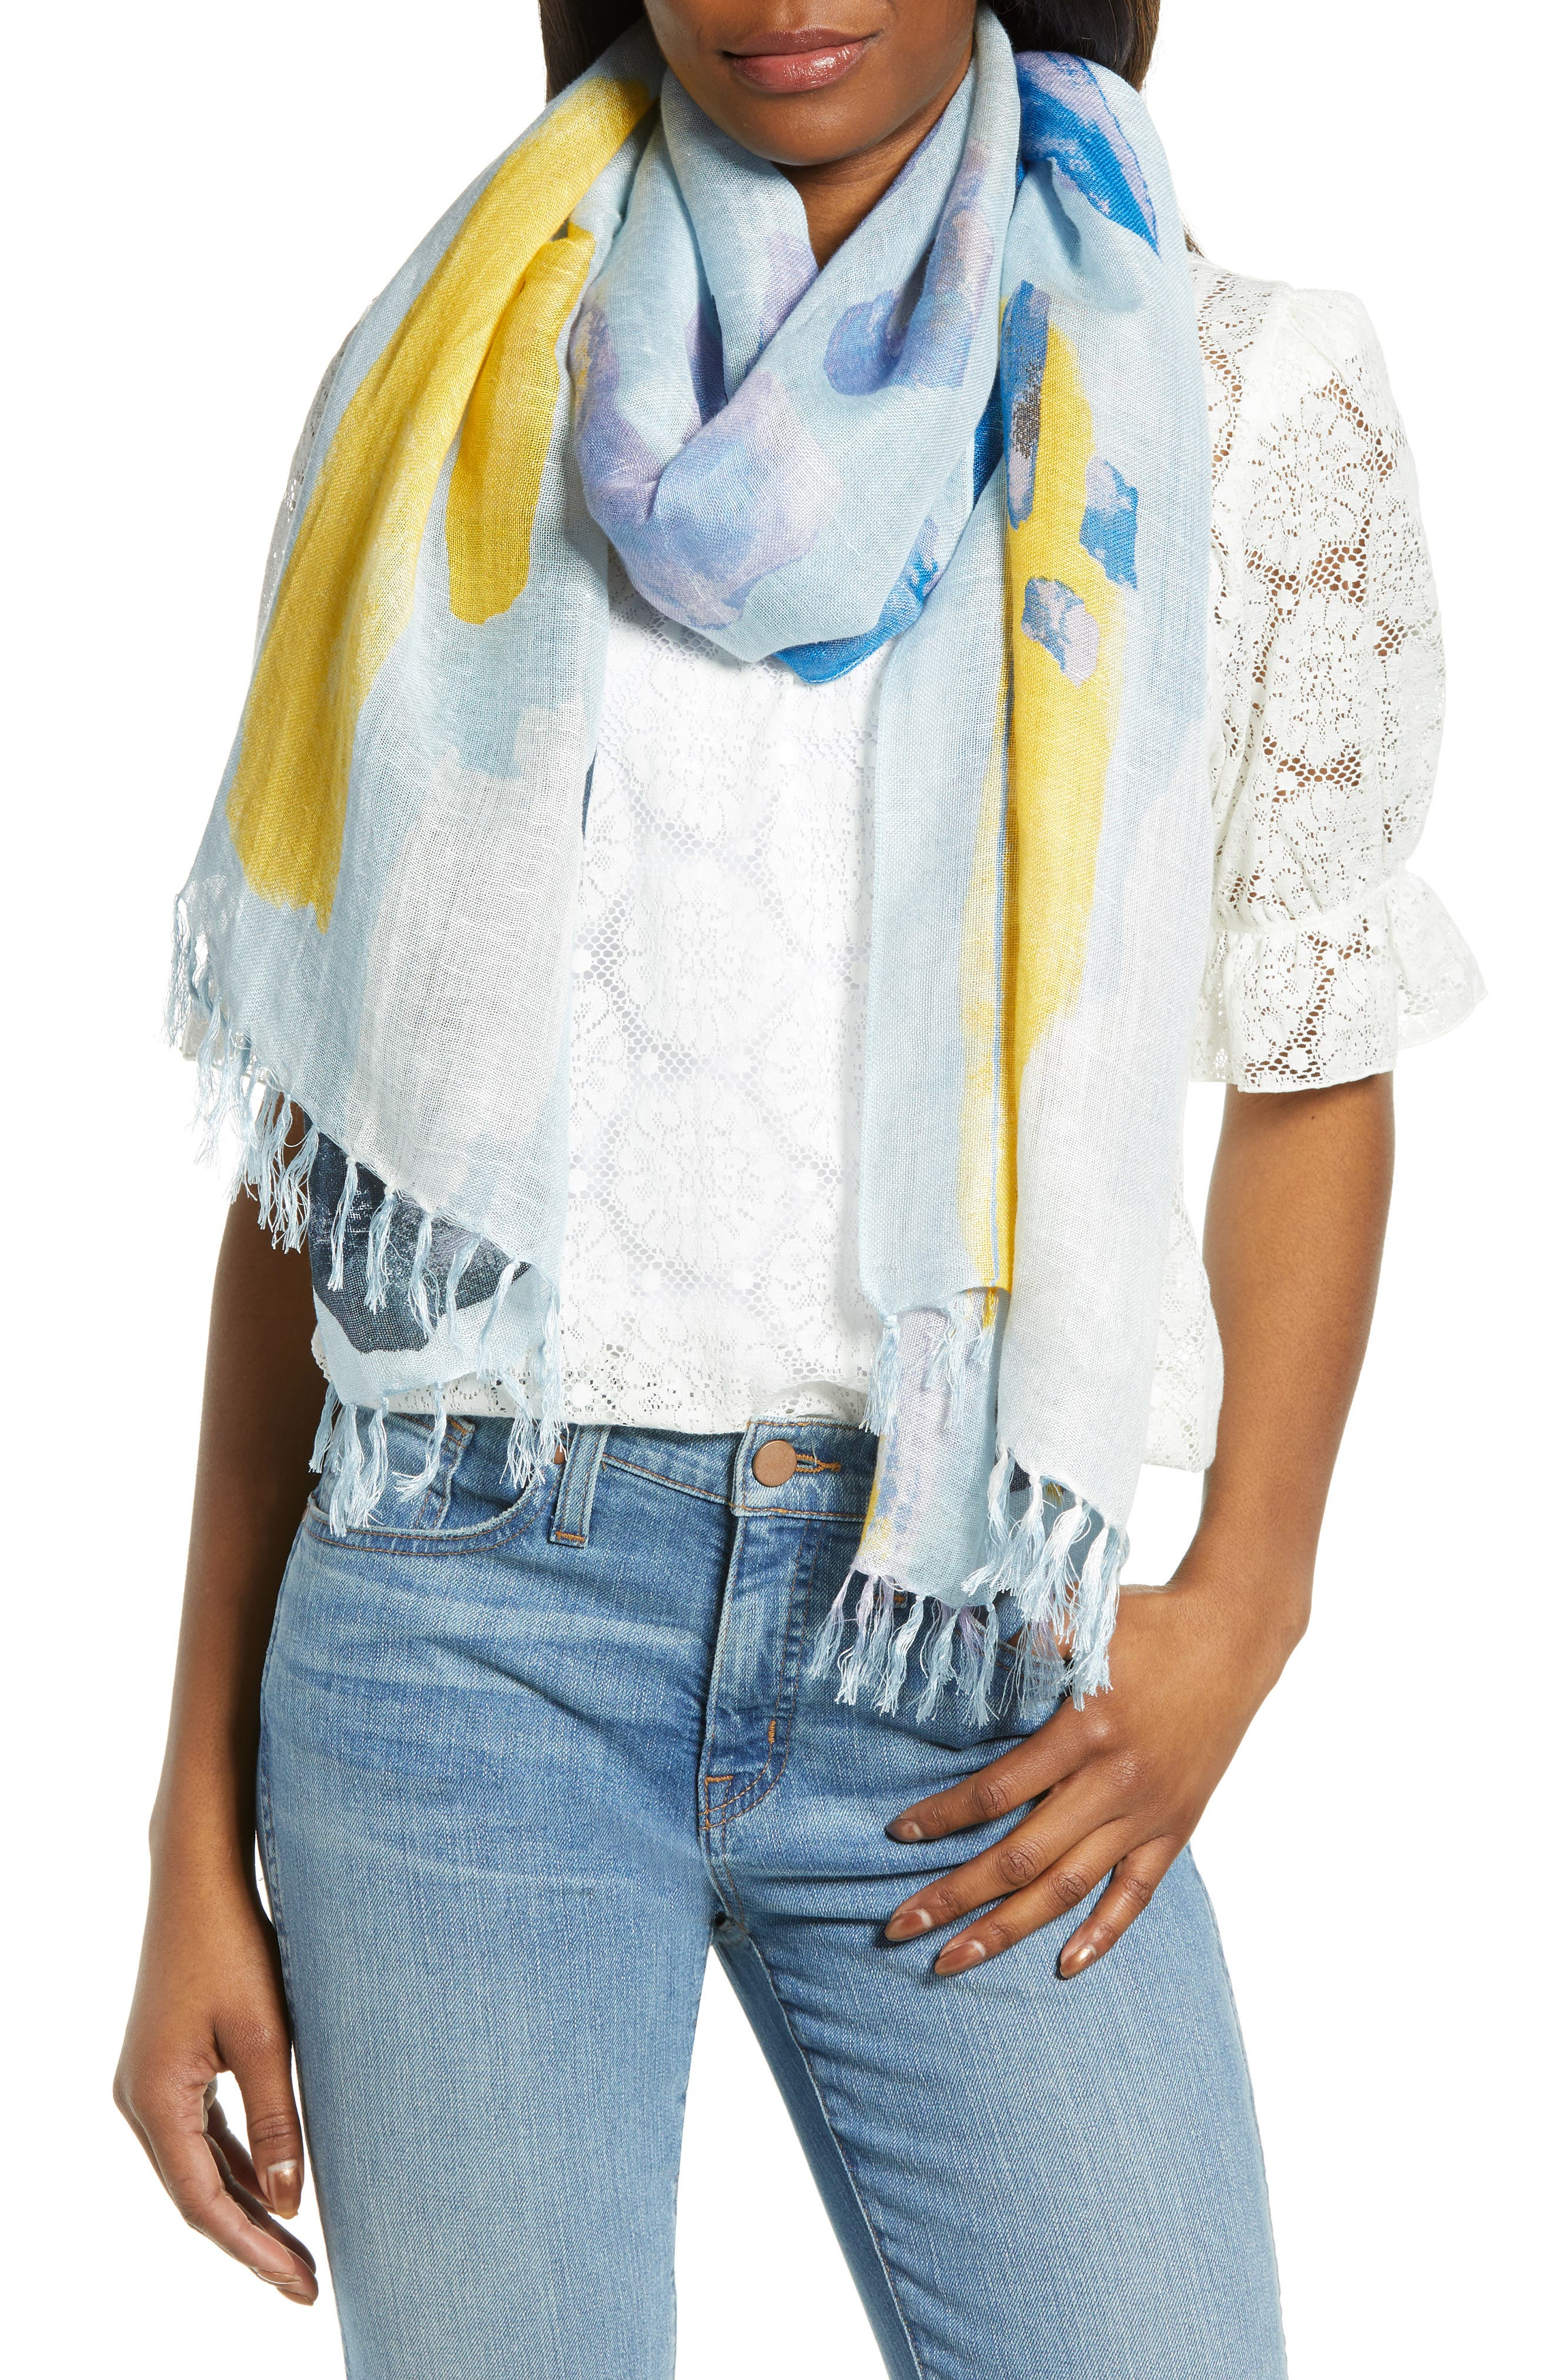 NORDSTROM, Painted Linen Blend Scarf, Main thumbnail 1, color, BLUE PAINT PLAY